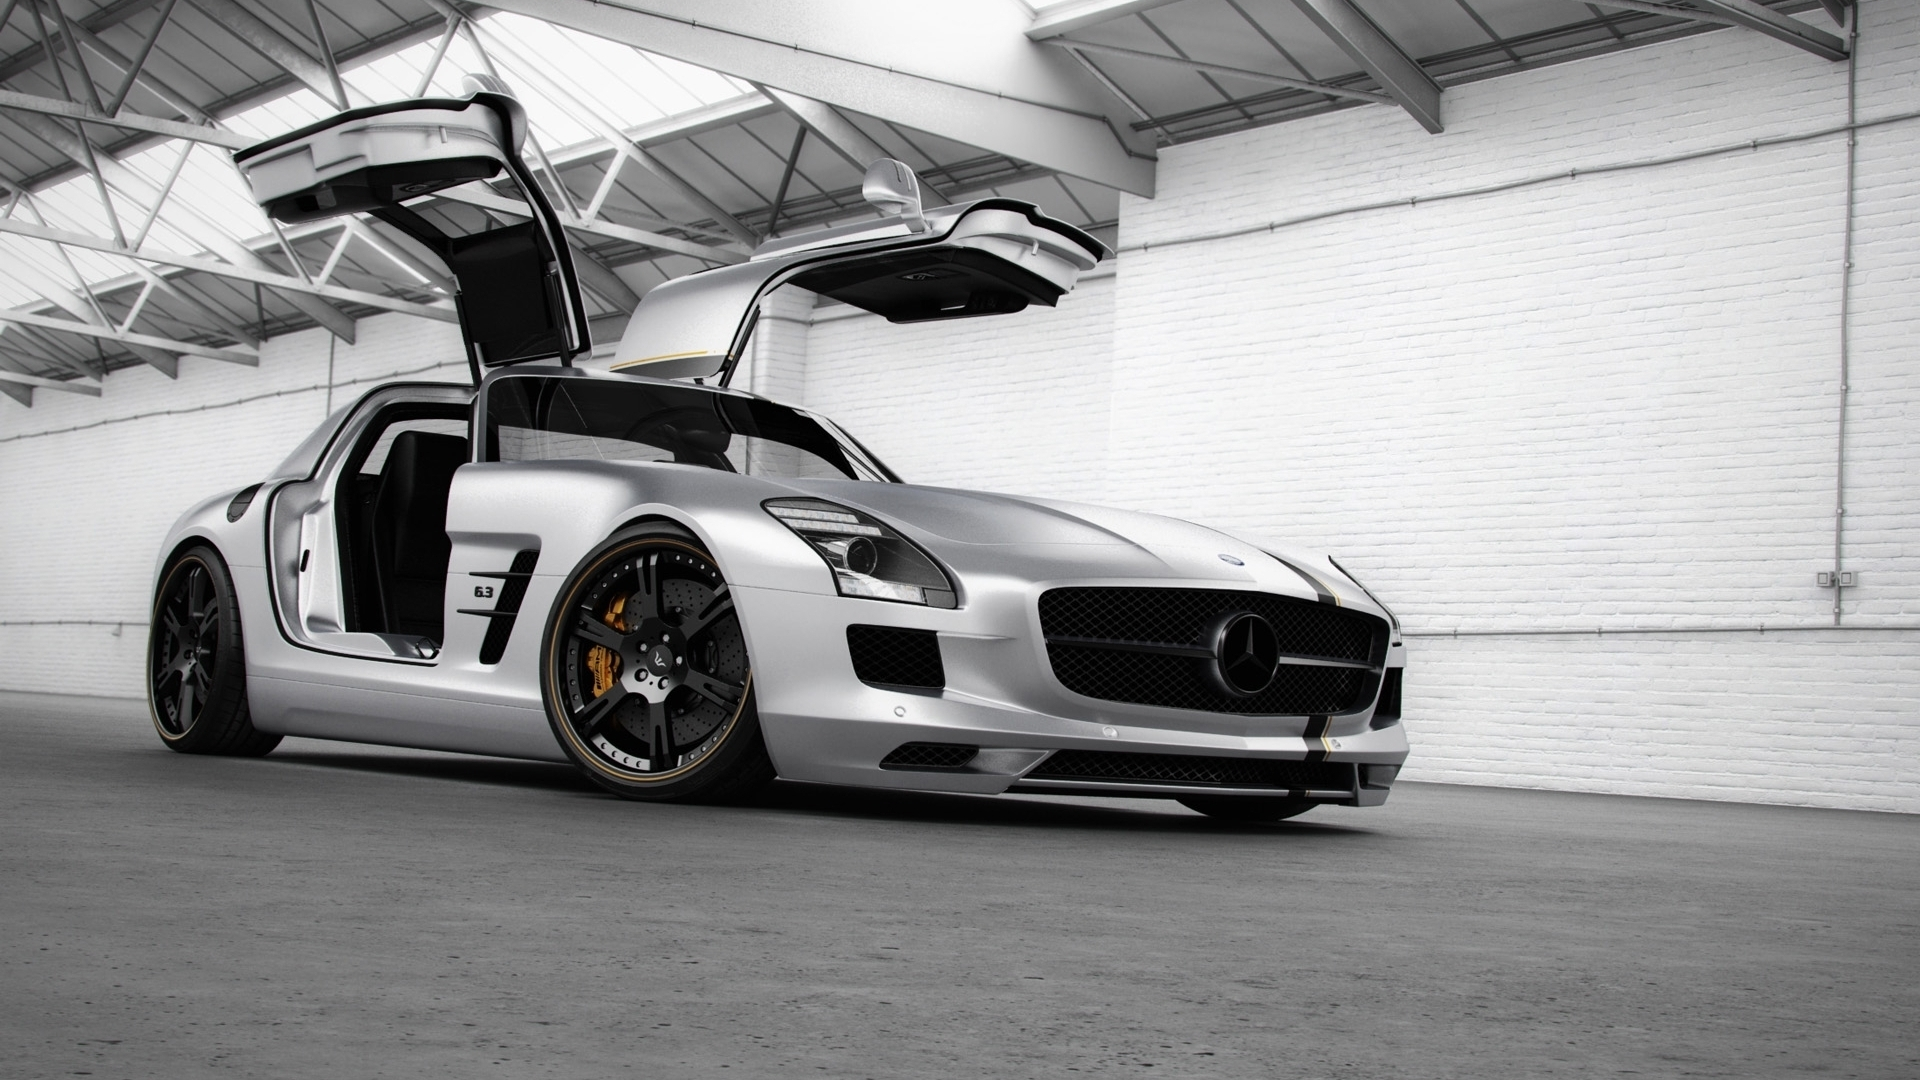 50 hd backgrounds and wallpapers of mercedes benz for download for Fields mercedes benz